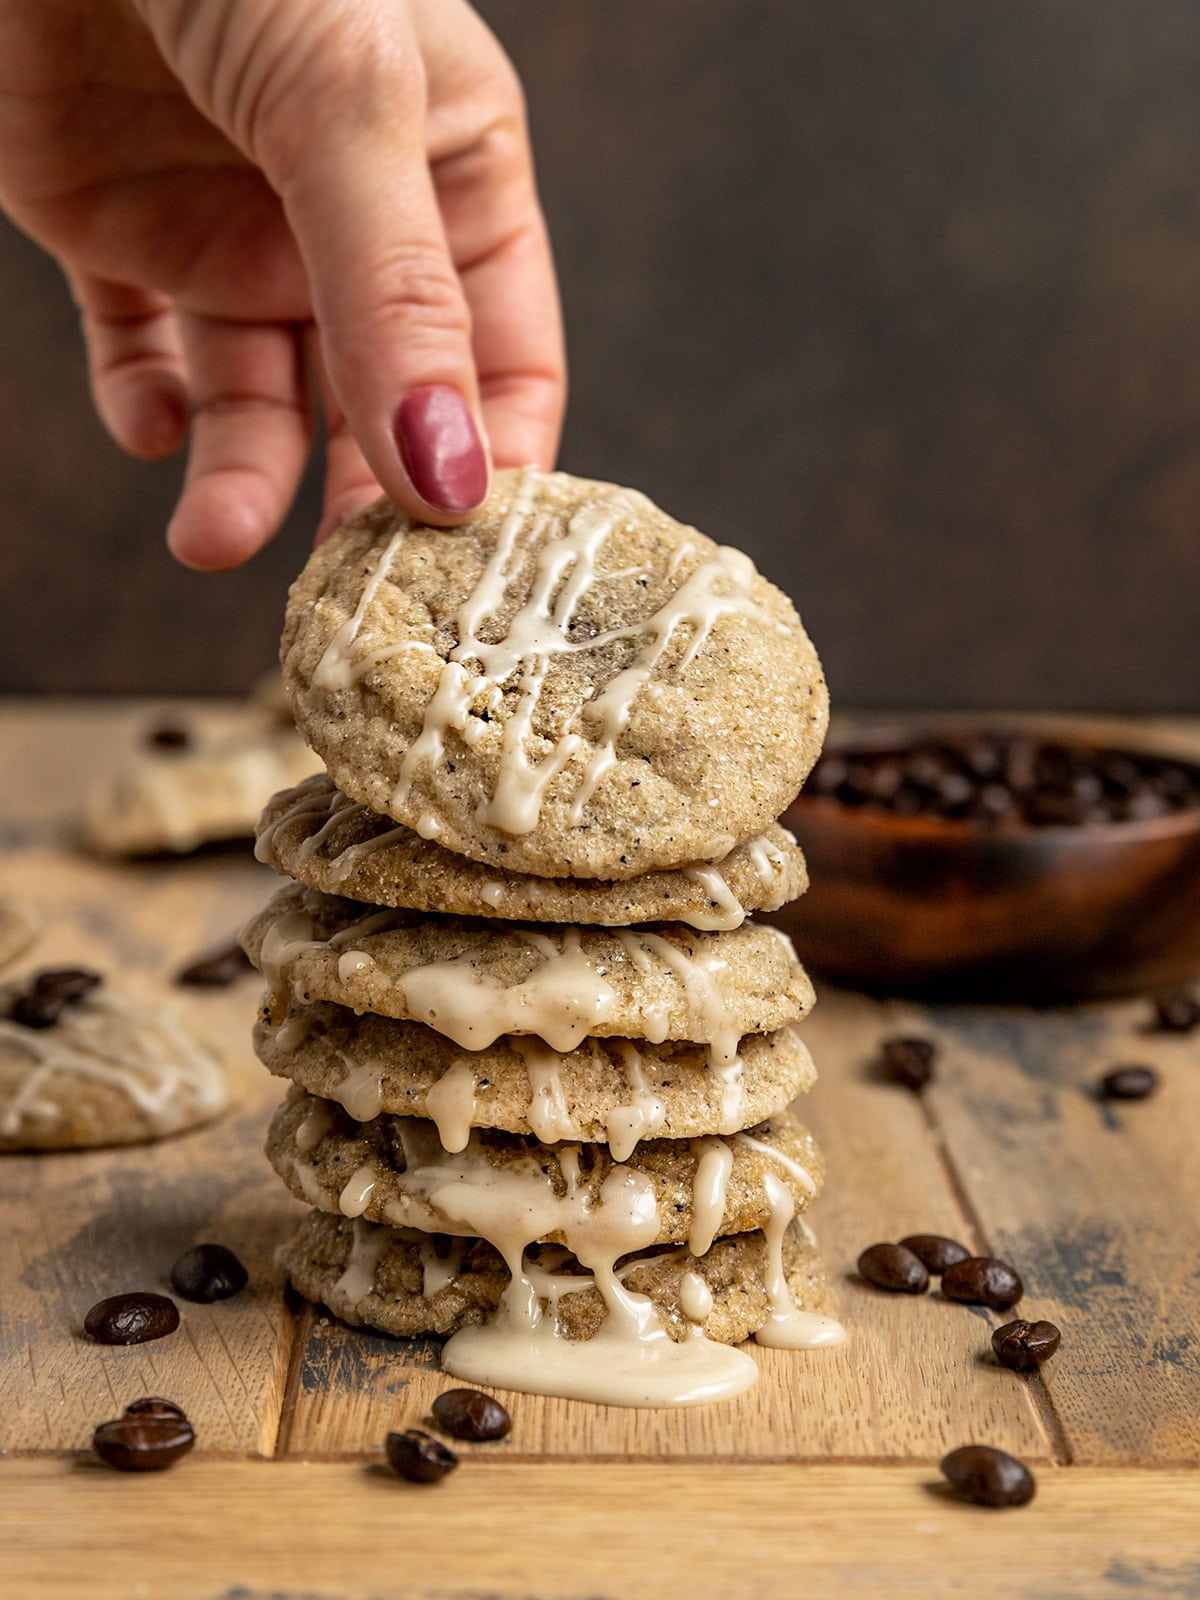 hand picking up top cookie from a stack of cookies